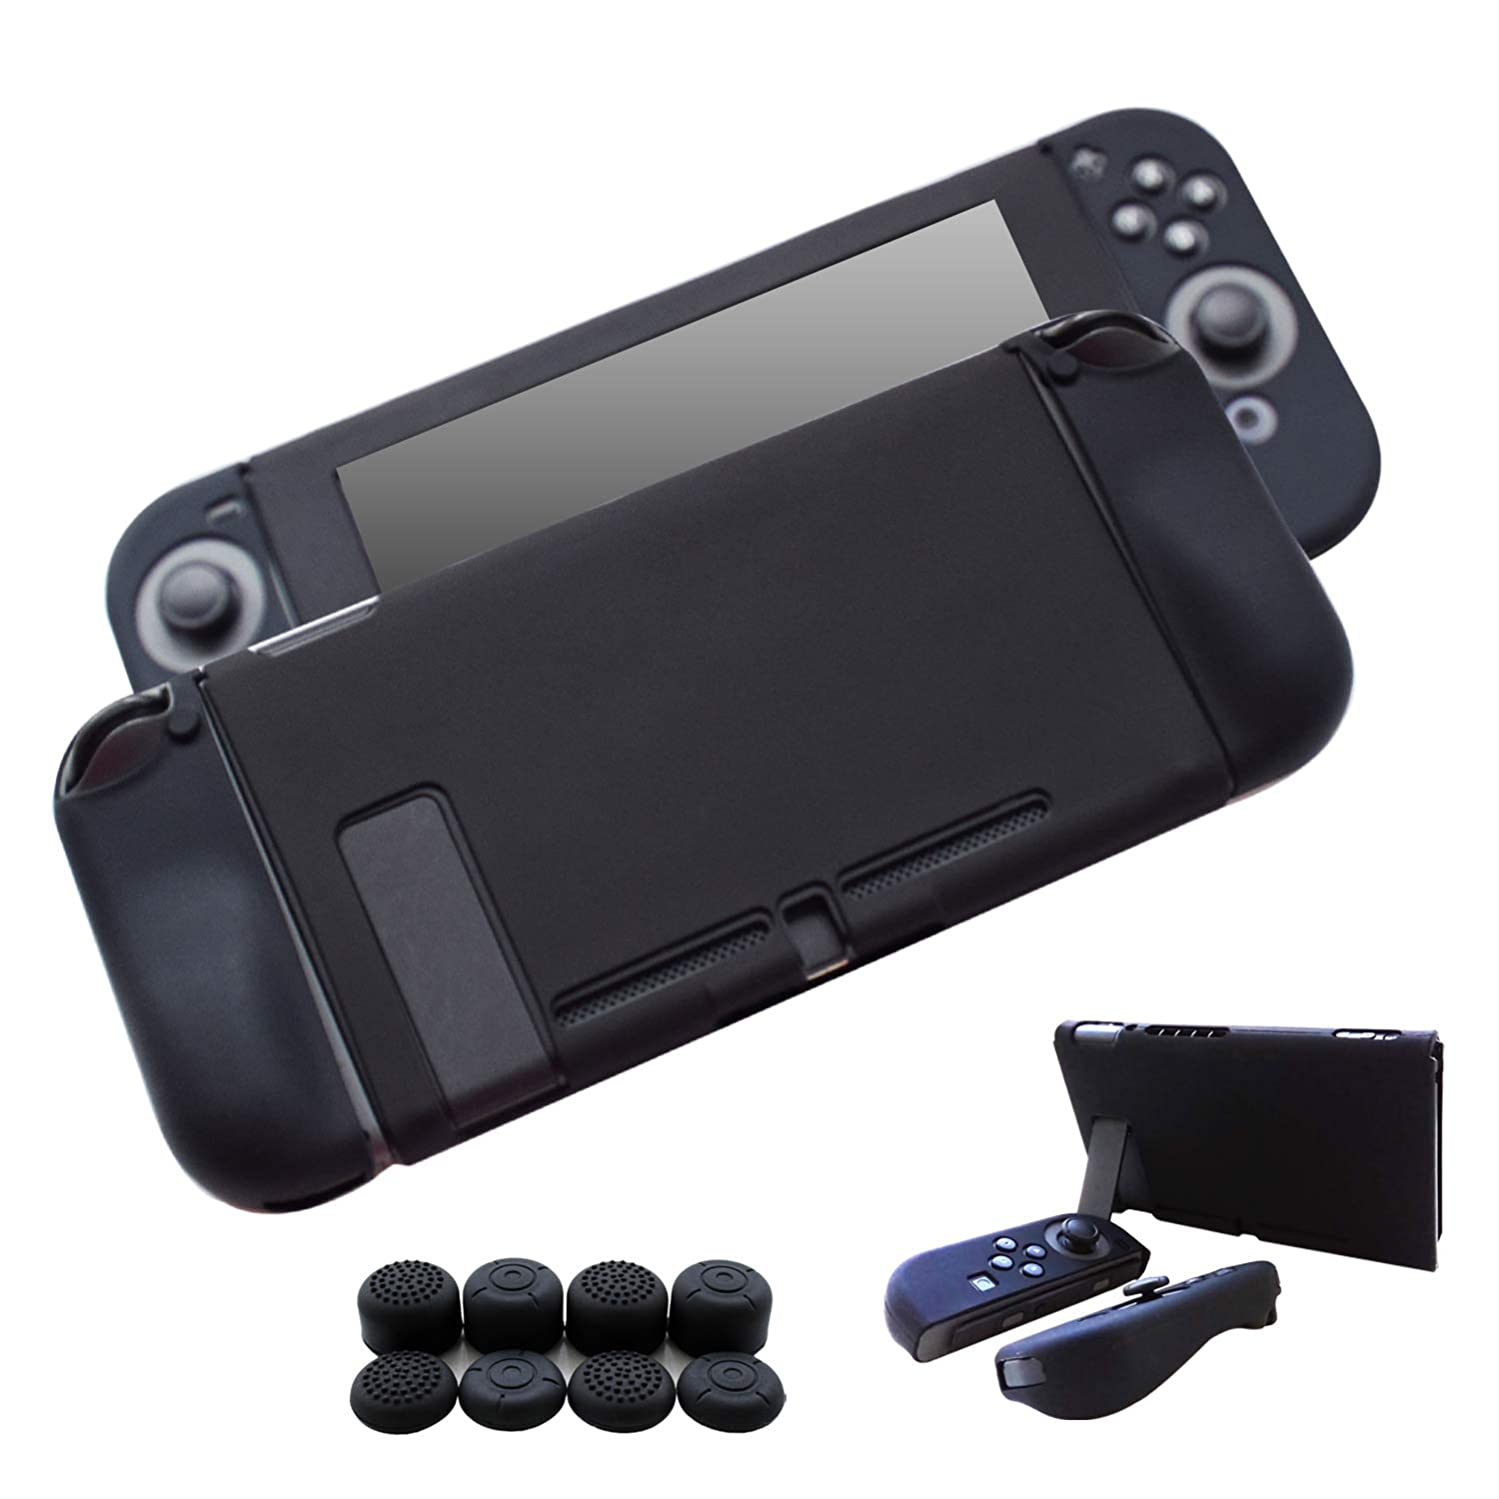 Hikfly 3pcs Silicone Gel Non-Slip Cover Skin Protector Case Kits Compatible for Nintendo Switch Consoles and Joy-Con Controllers with 8pcs Silicone Gel Thumb Grips Caps(Black)